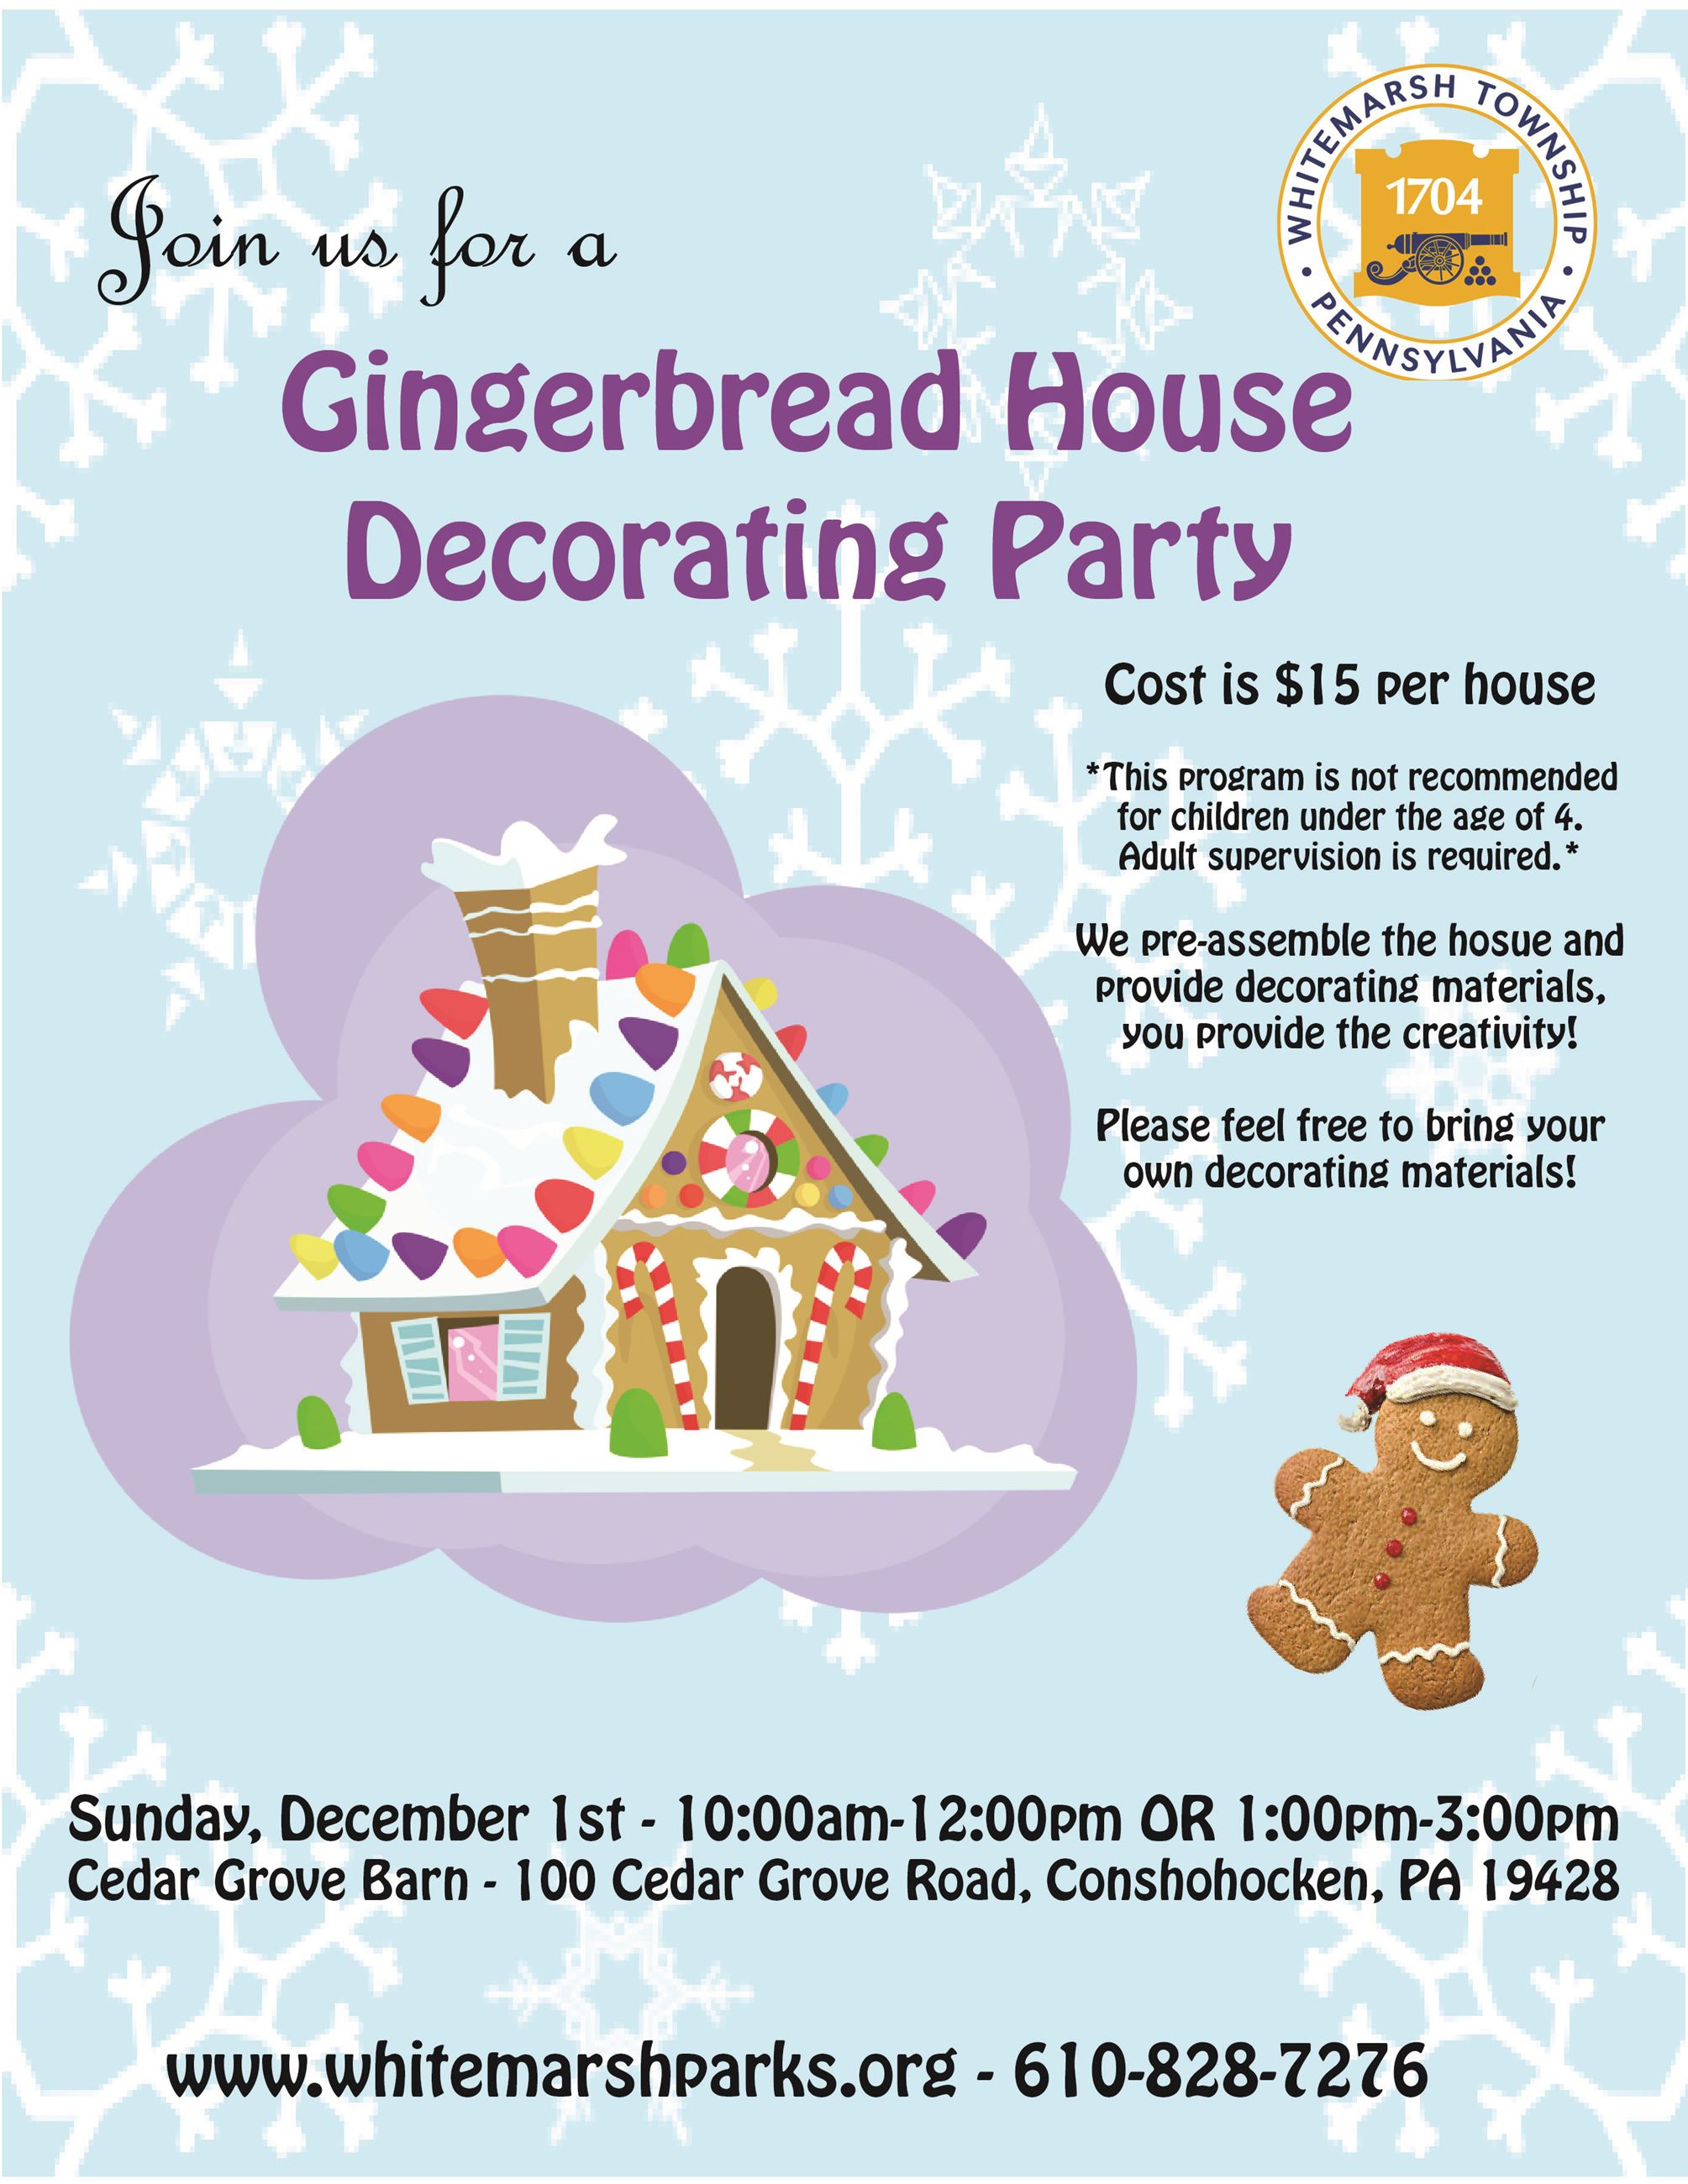 Gingerbread House Decorating Party event flyer